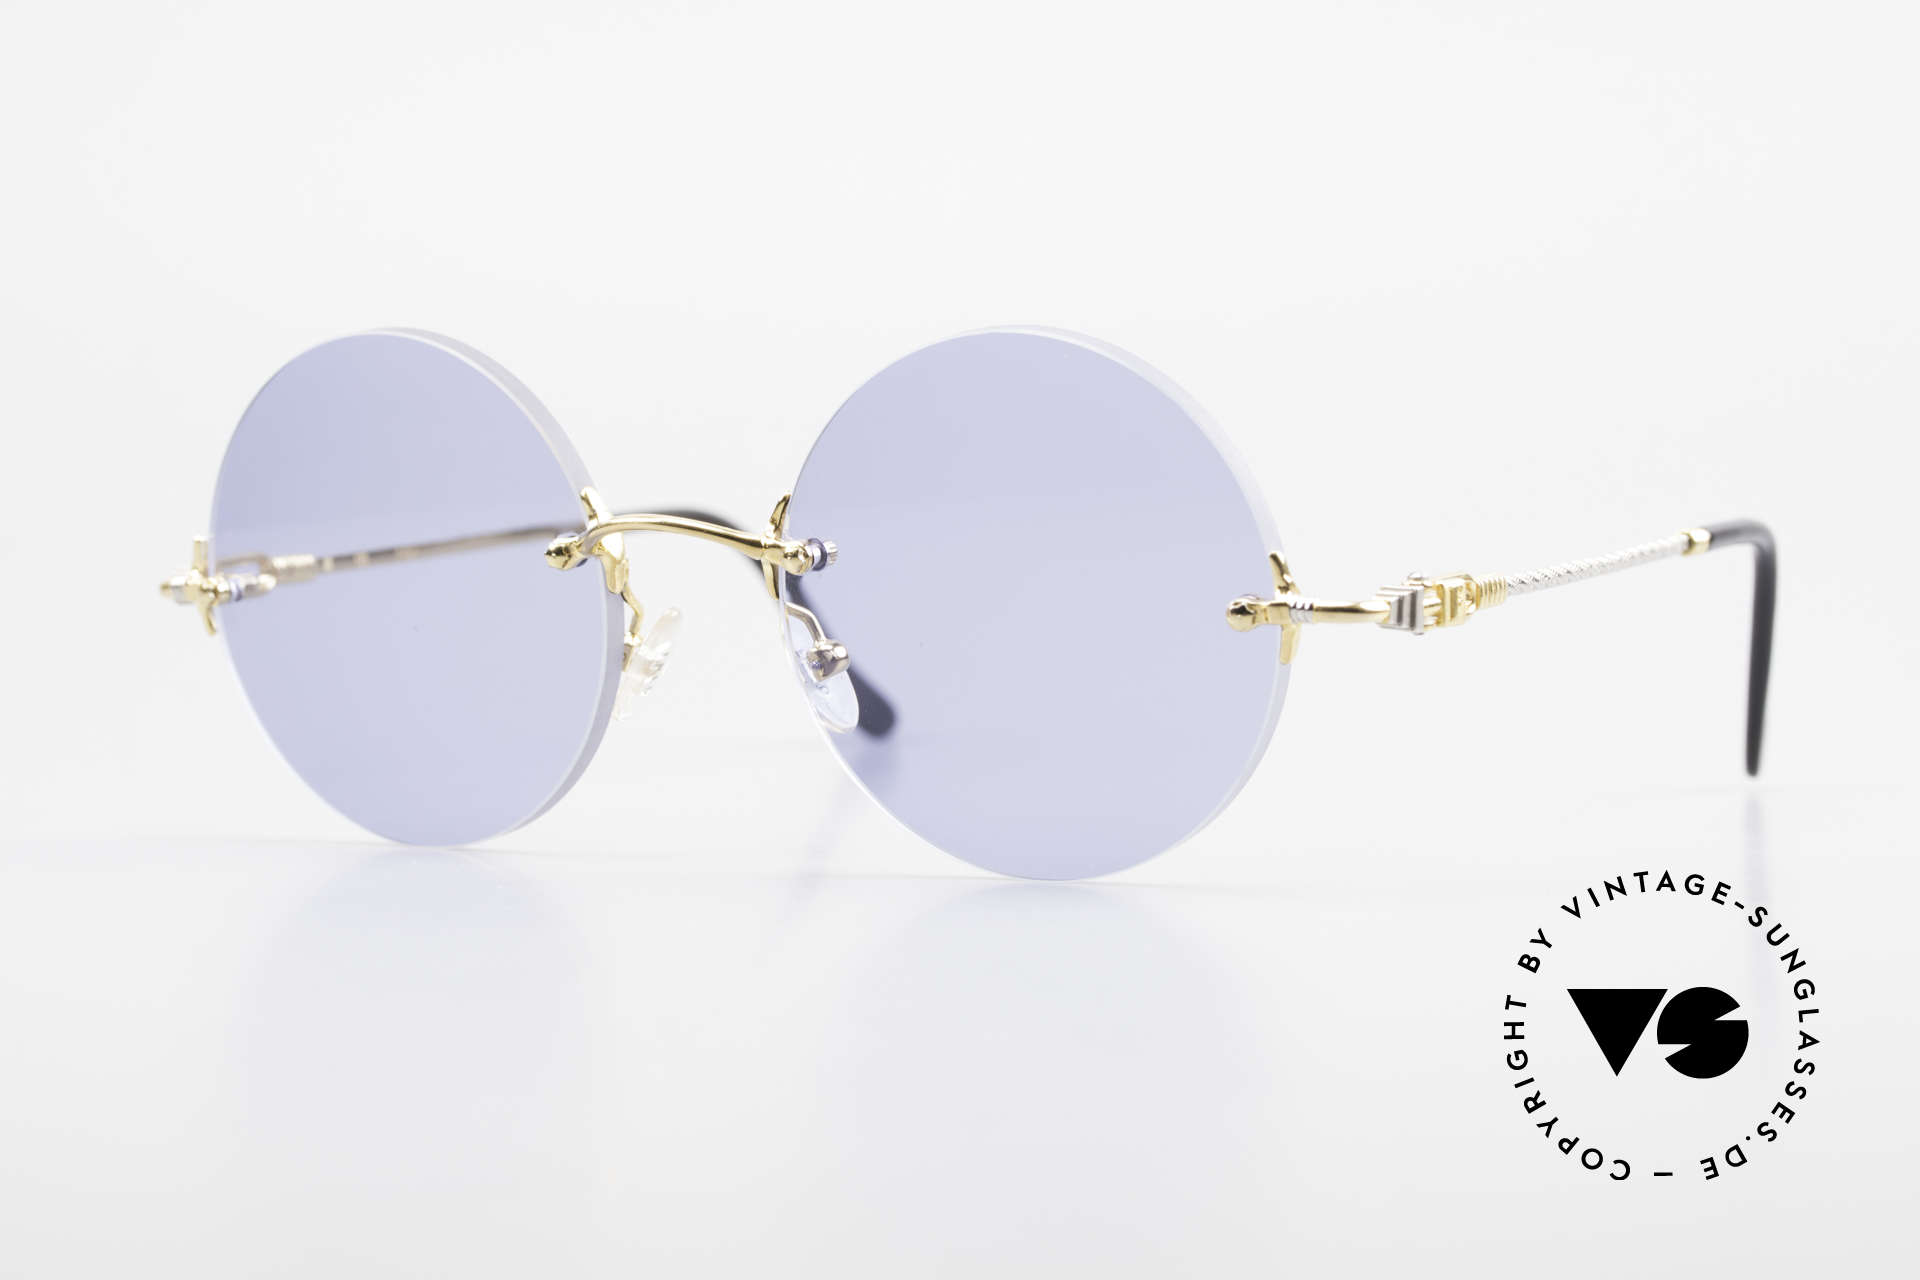 Fred Fidji Rimless Round Luxury Shades, rimless luxury sunglasses by Fred, Paris from the 90's, Made for Men